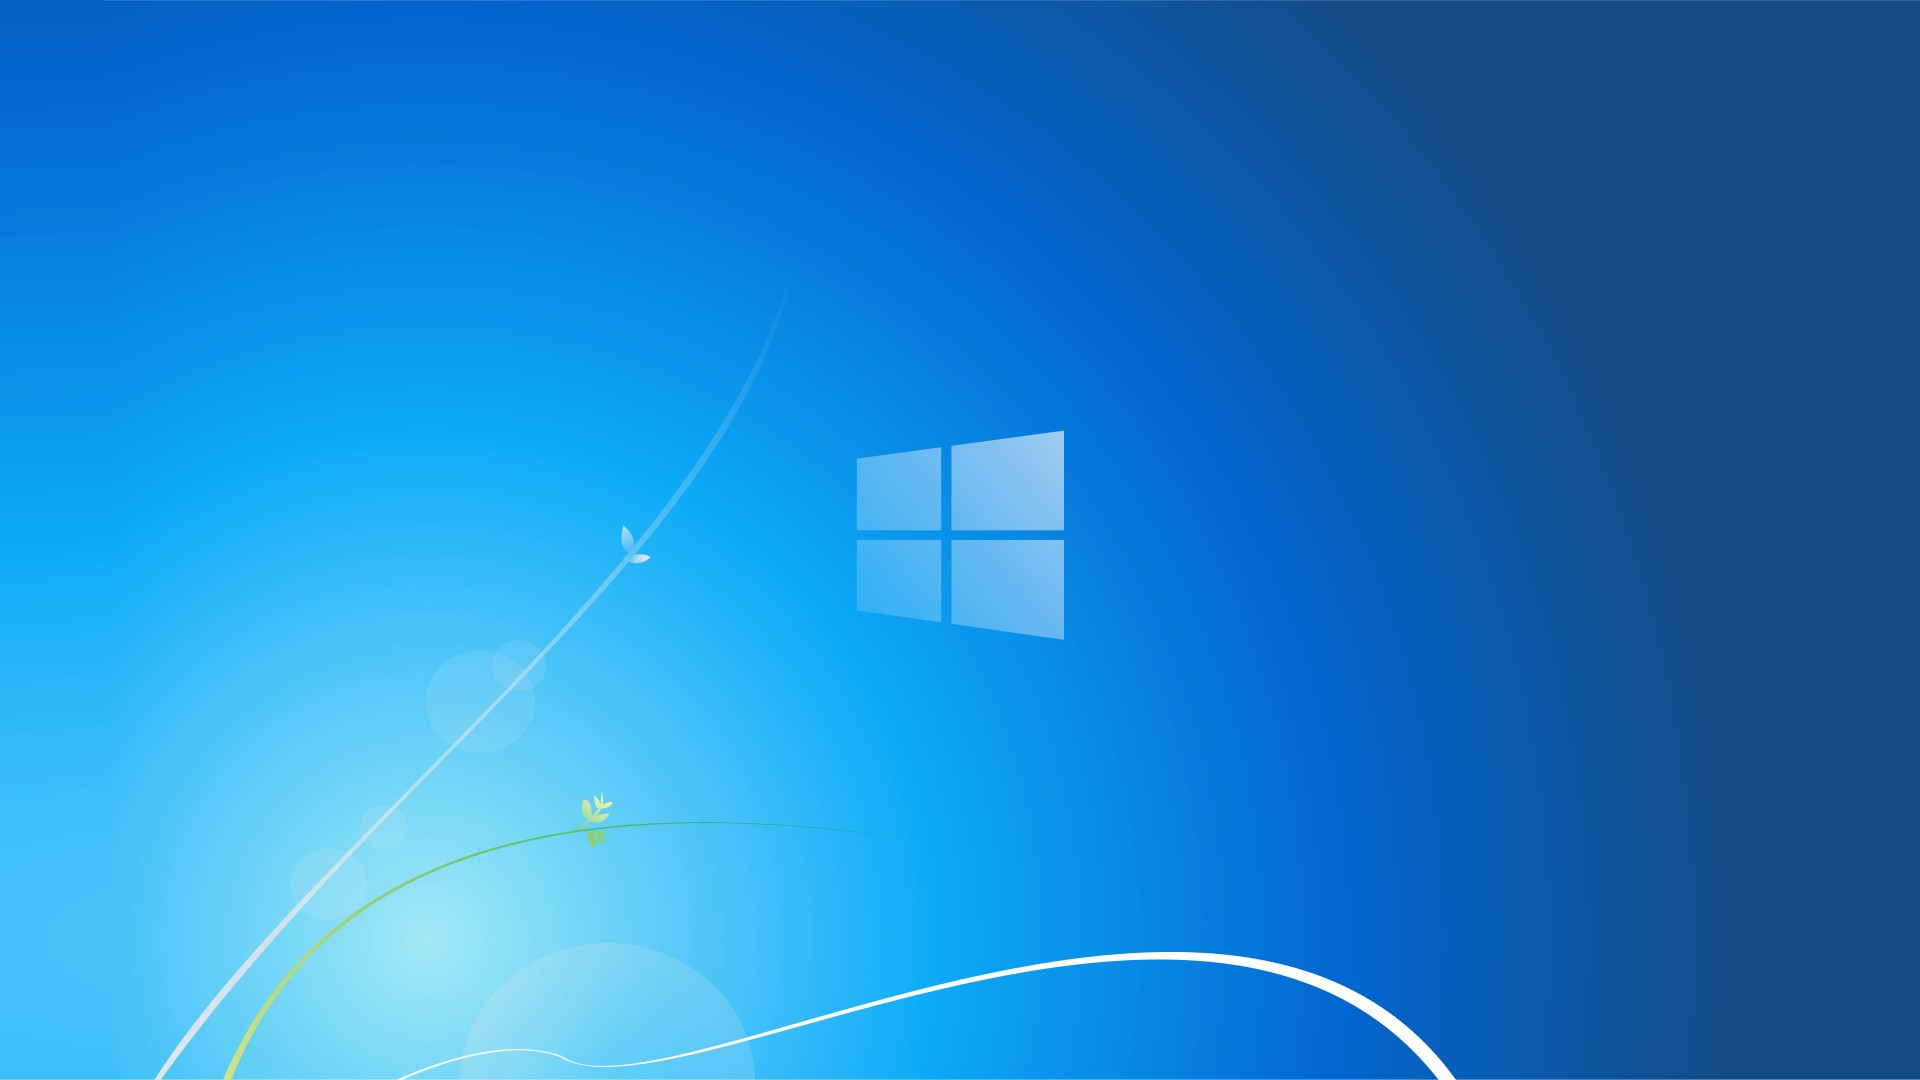 56 windows 7 wallpapers download free awesome full hd - Windows 7 love wallpapers ...